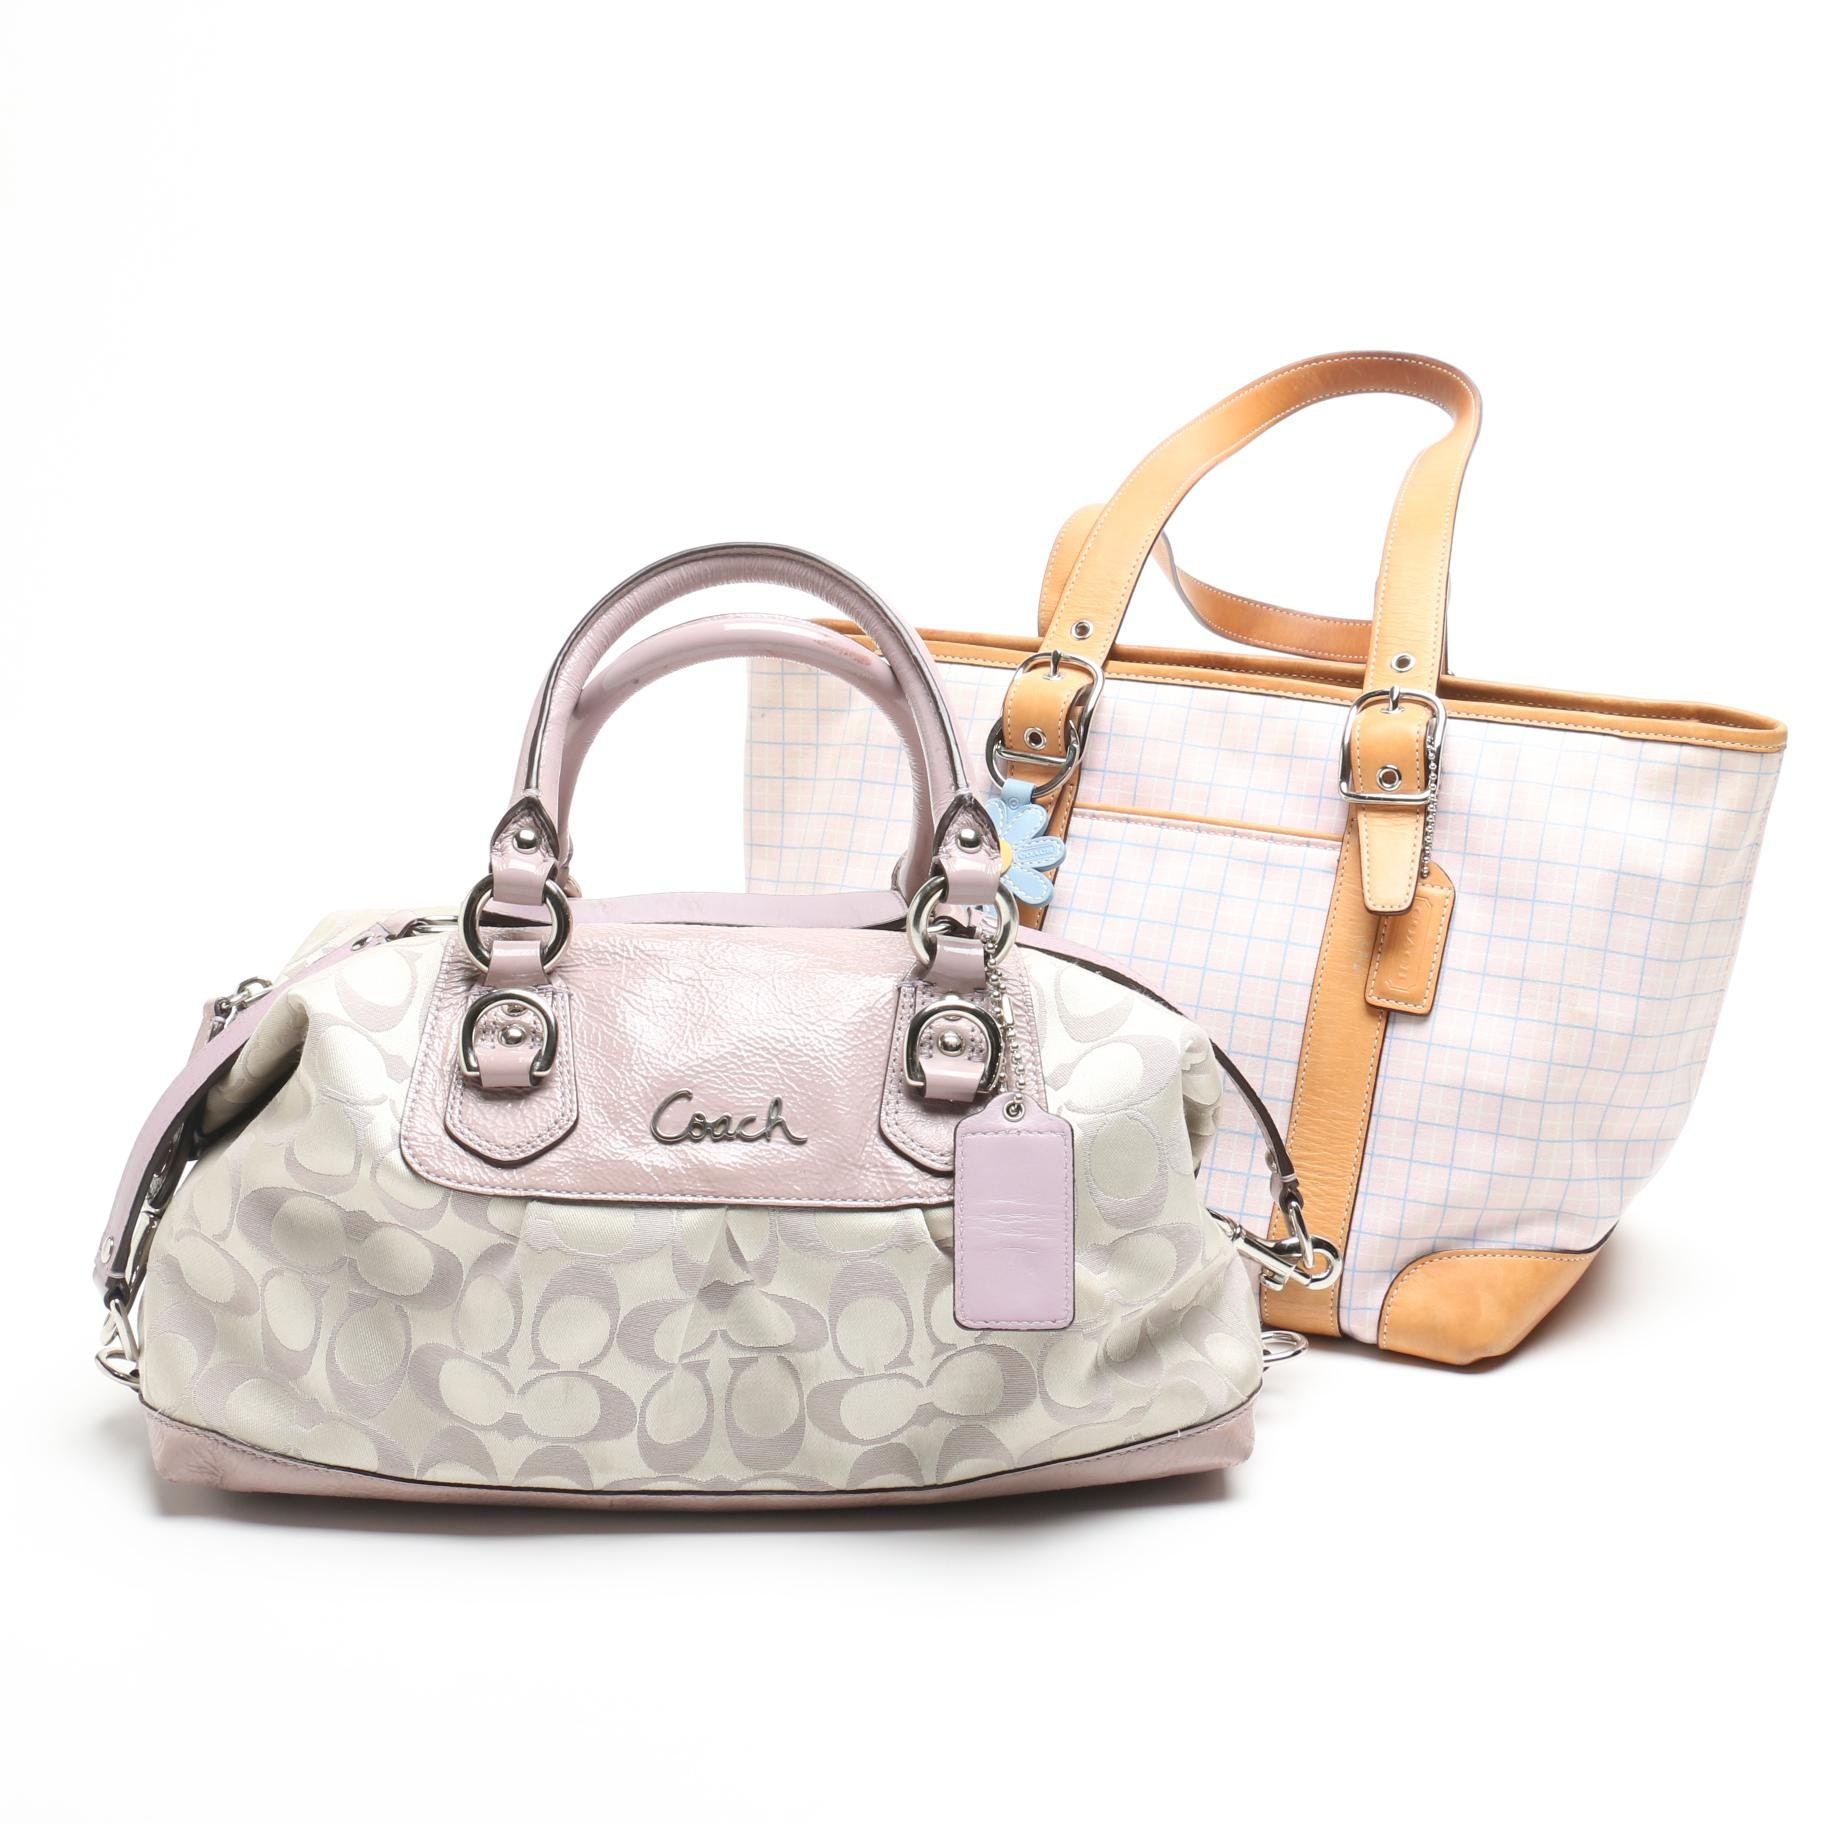 Coach Hampton Plaid Market Tote and Ashley Signature Satin Satchel